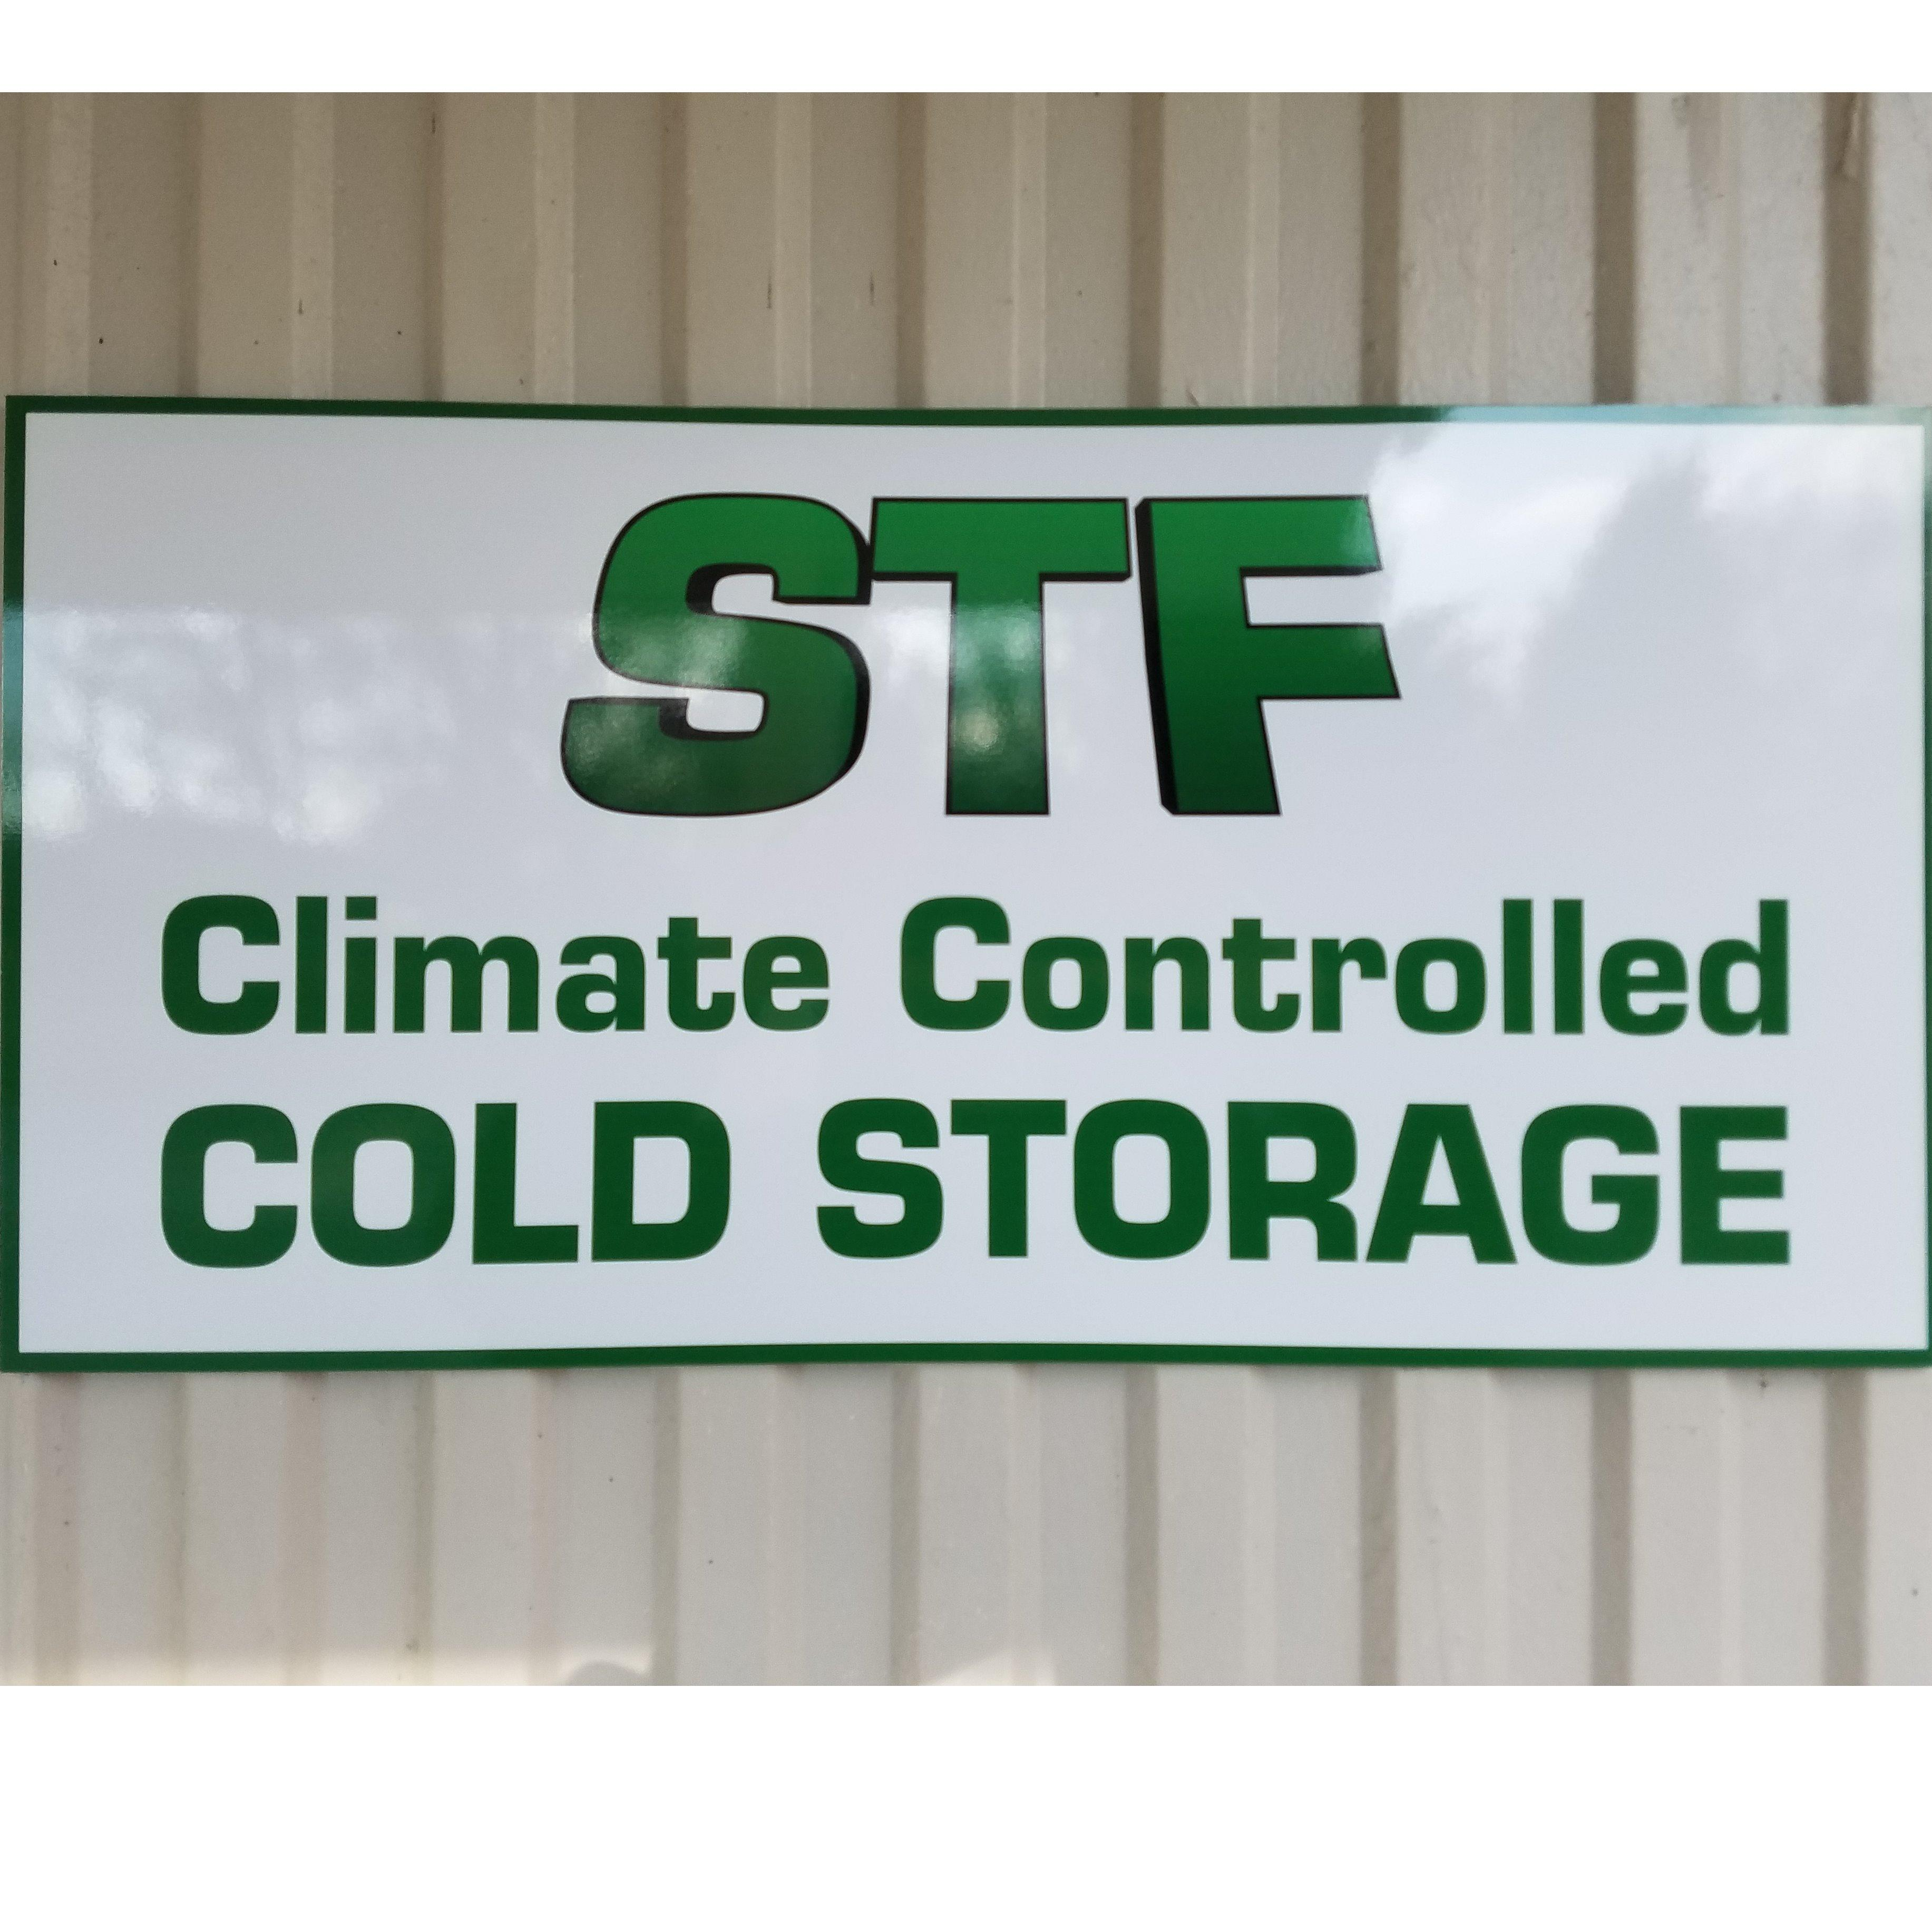 STF Heated Storage image 0